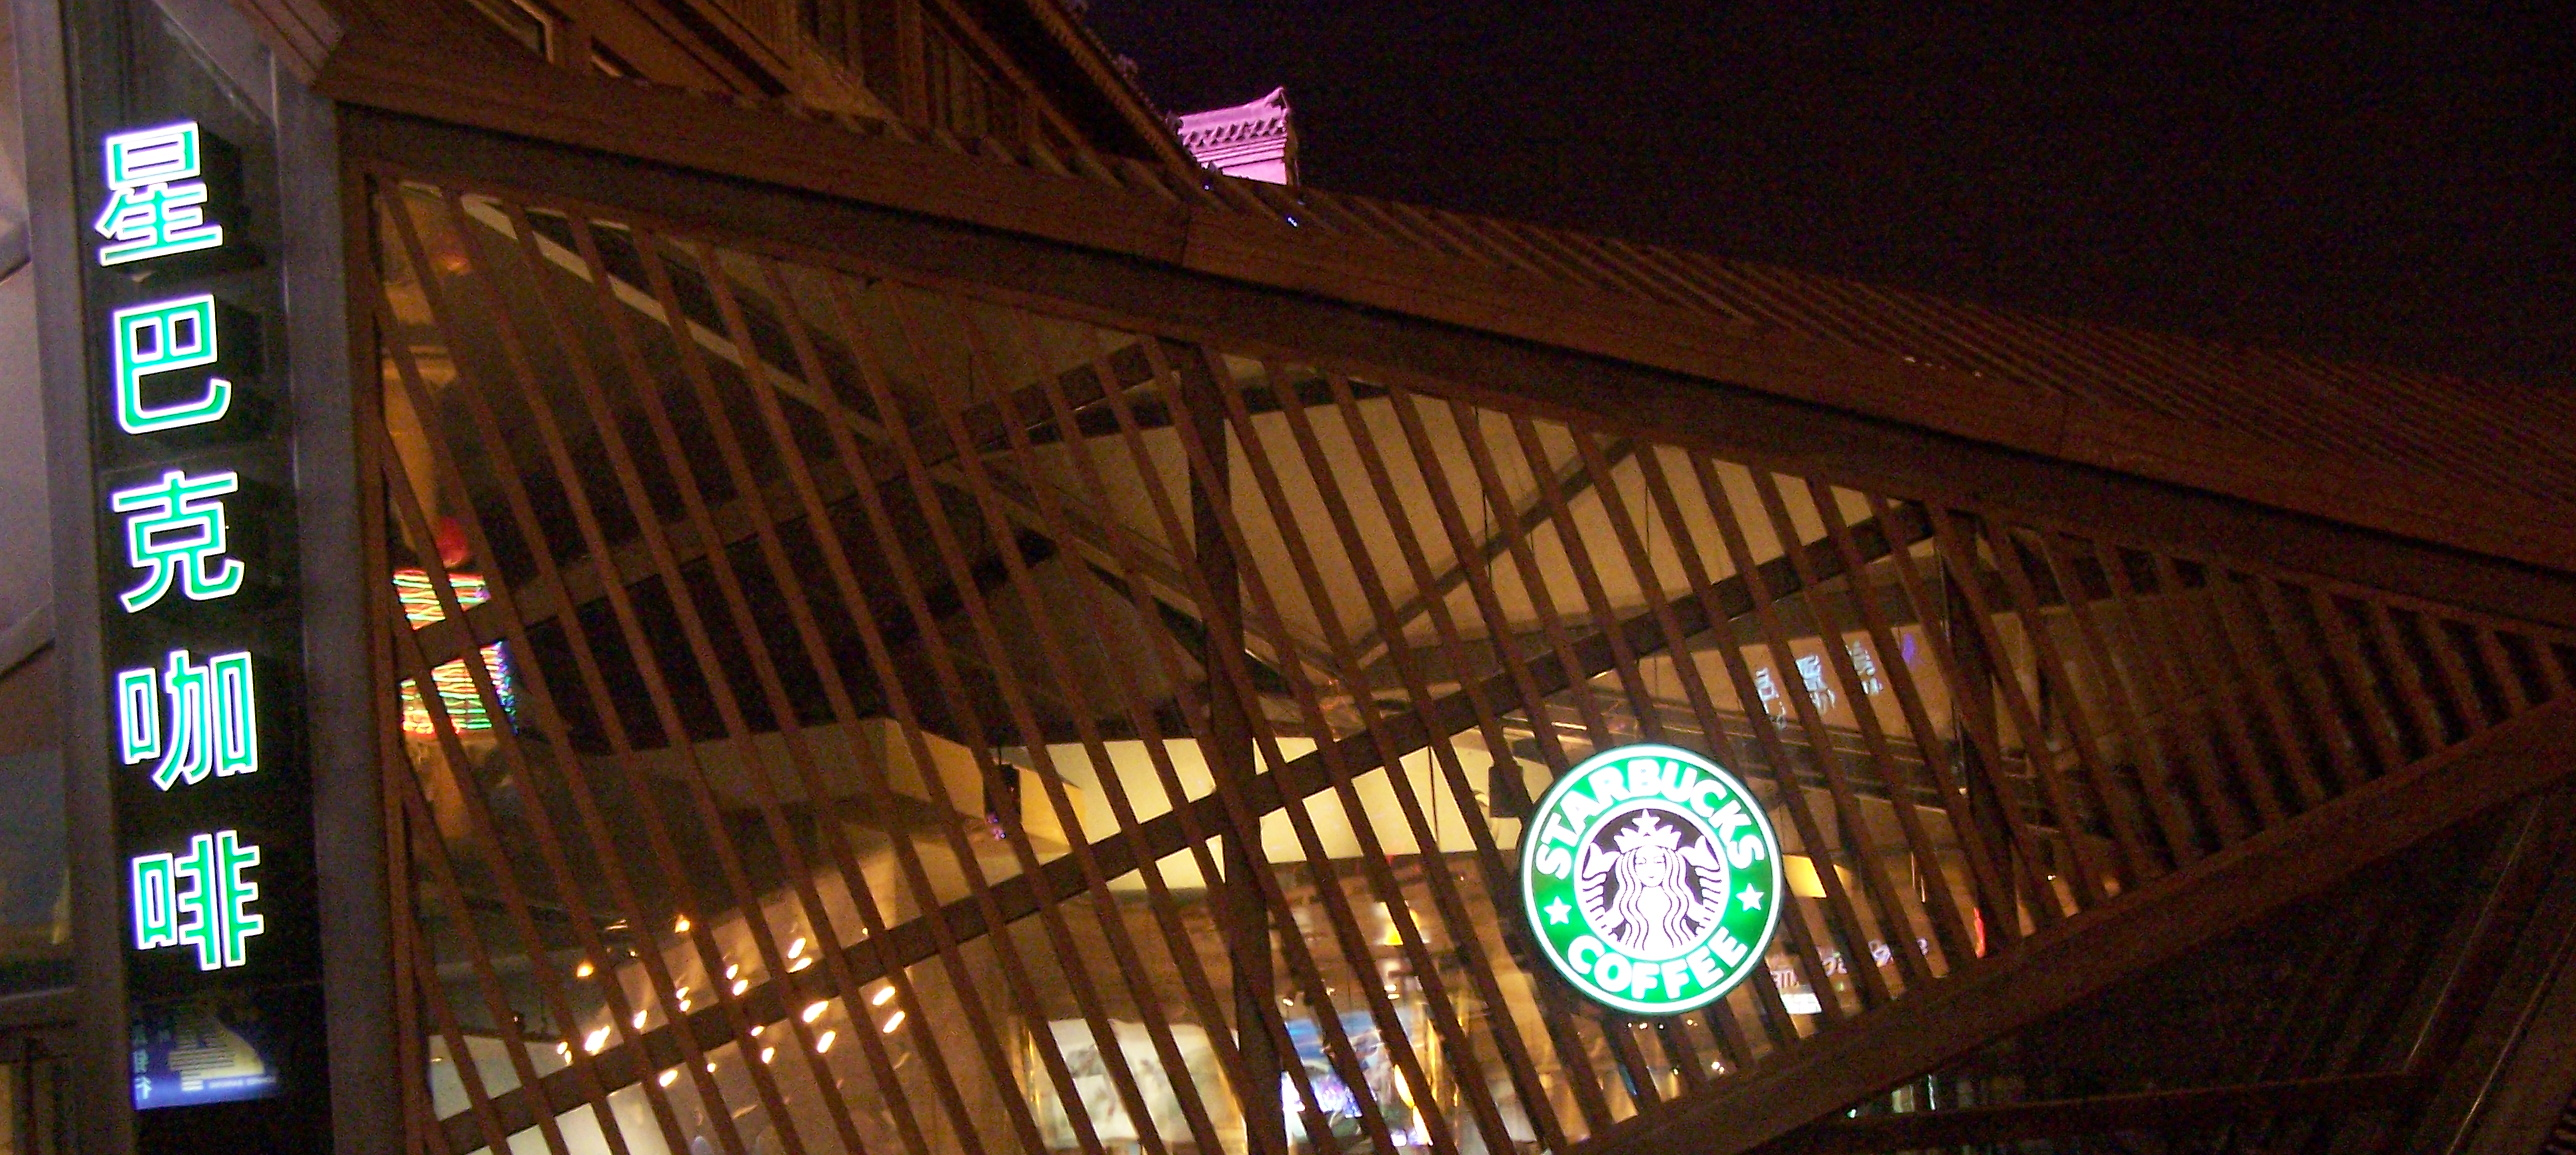 starbucks internatinal expansion essay Expansion into foreign markets it sets forth strategic questions to be addressed by the company in planning its international development, including whether the company is at the right stage of its corporate development to enter overseas markets, optimum.